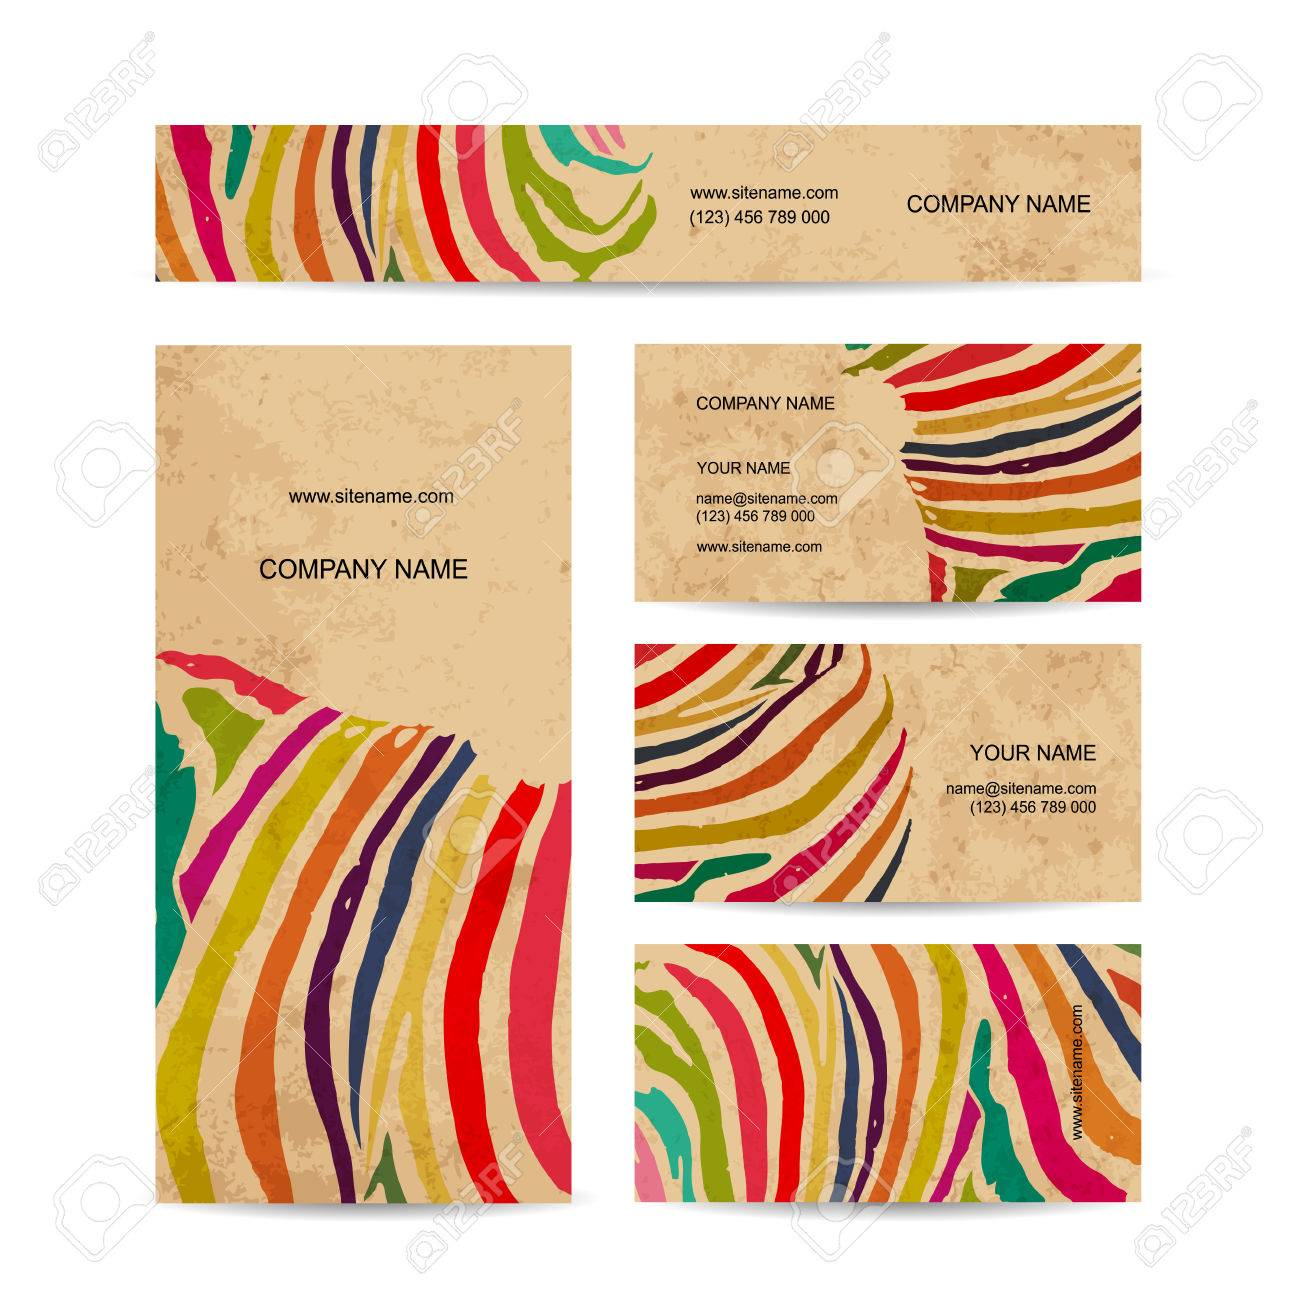 Set of business cards colorful zebra print design royalty free set of business cards colorful zebra print design stock vector 39557896 reheart Choice Image